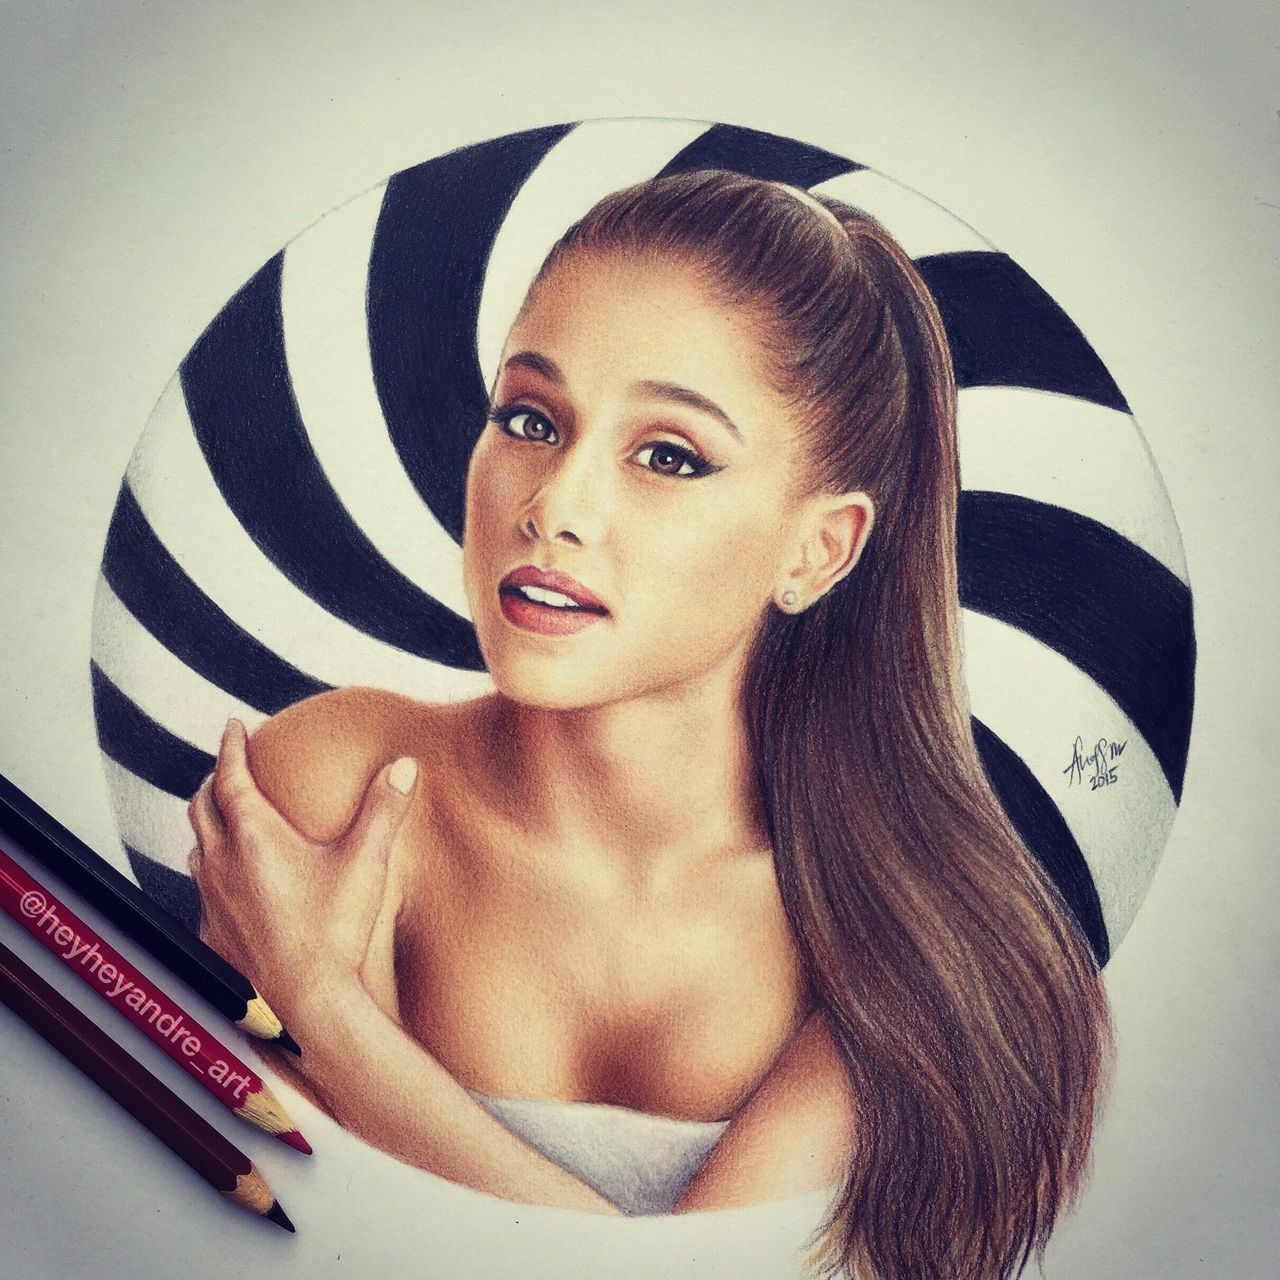 Heyheyandreart ariana grande drawn with colored pencils follow me on instagram for more drawings heyheyandre art